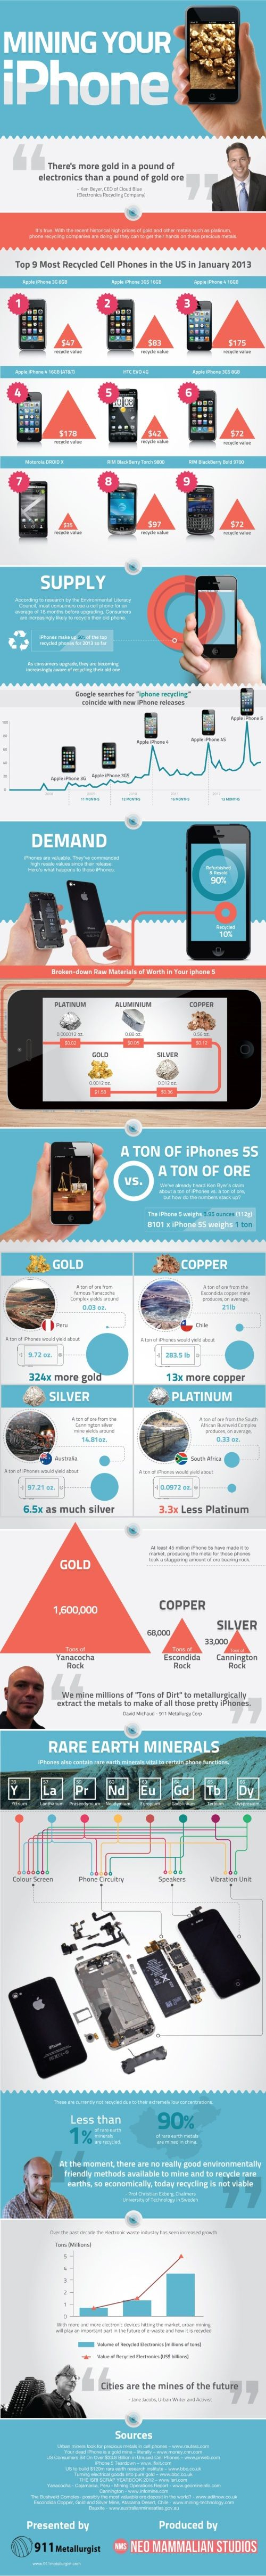 How much precious metal is in modern day mobile devices